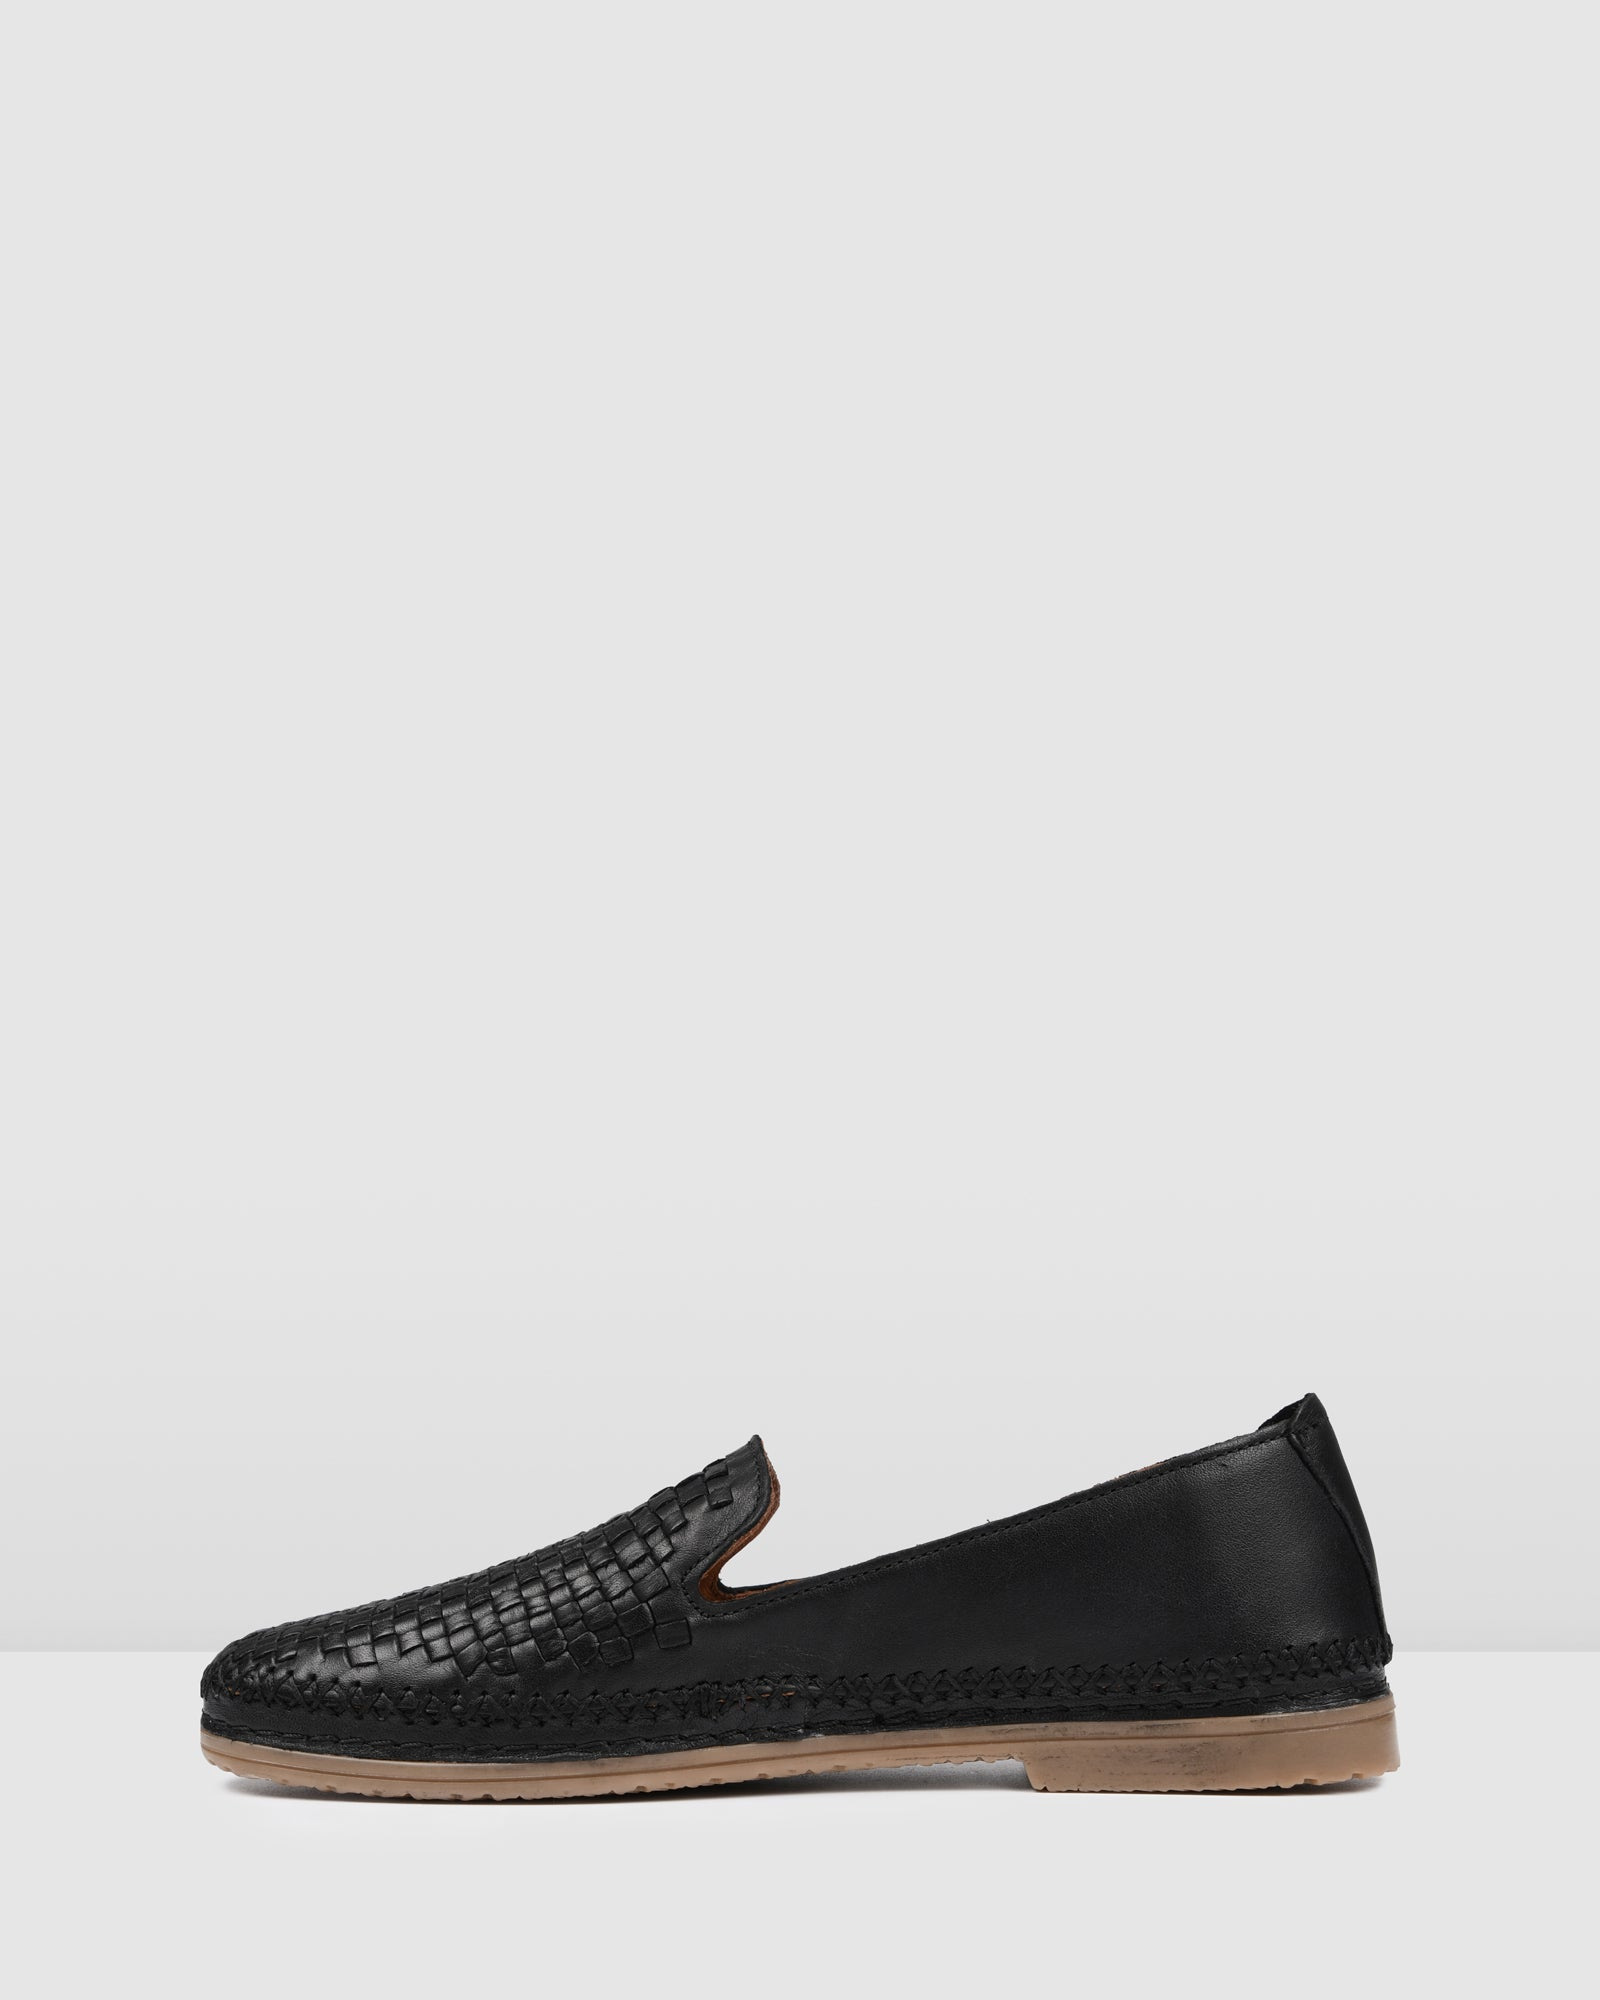 FLETCHER CASUAL FLATS BLACK LEATHER